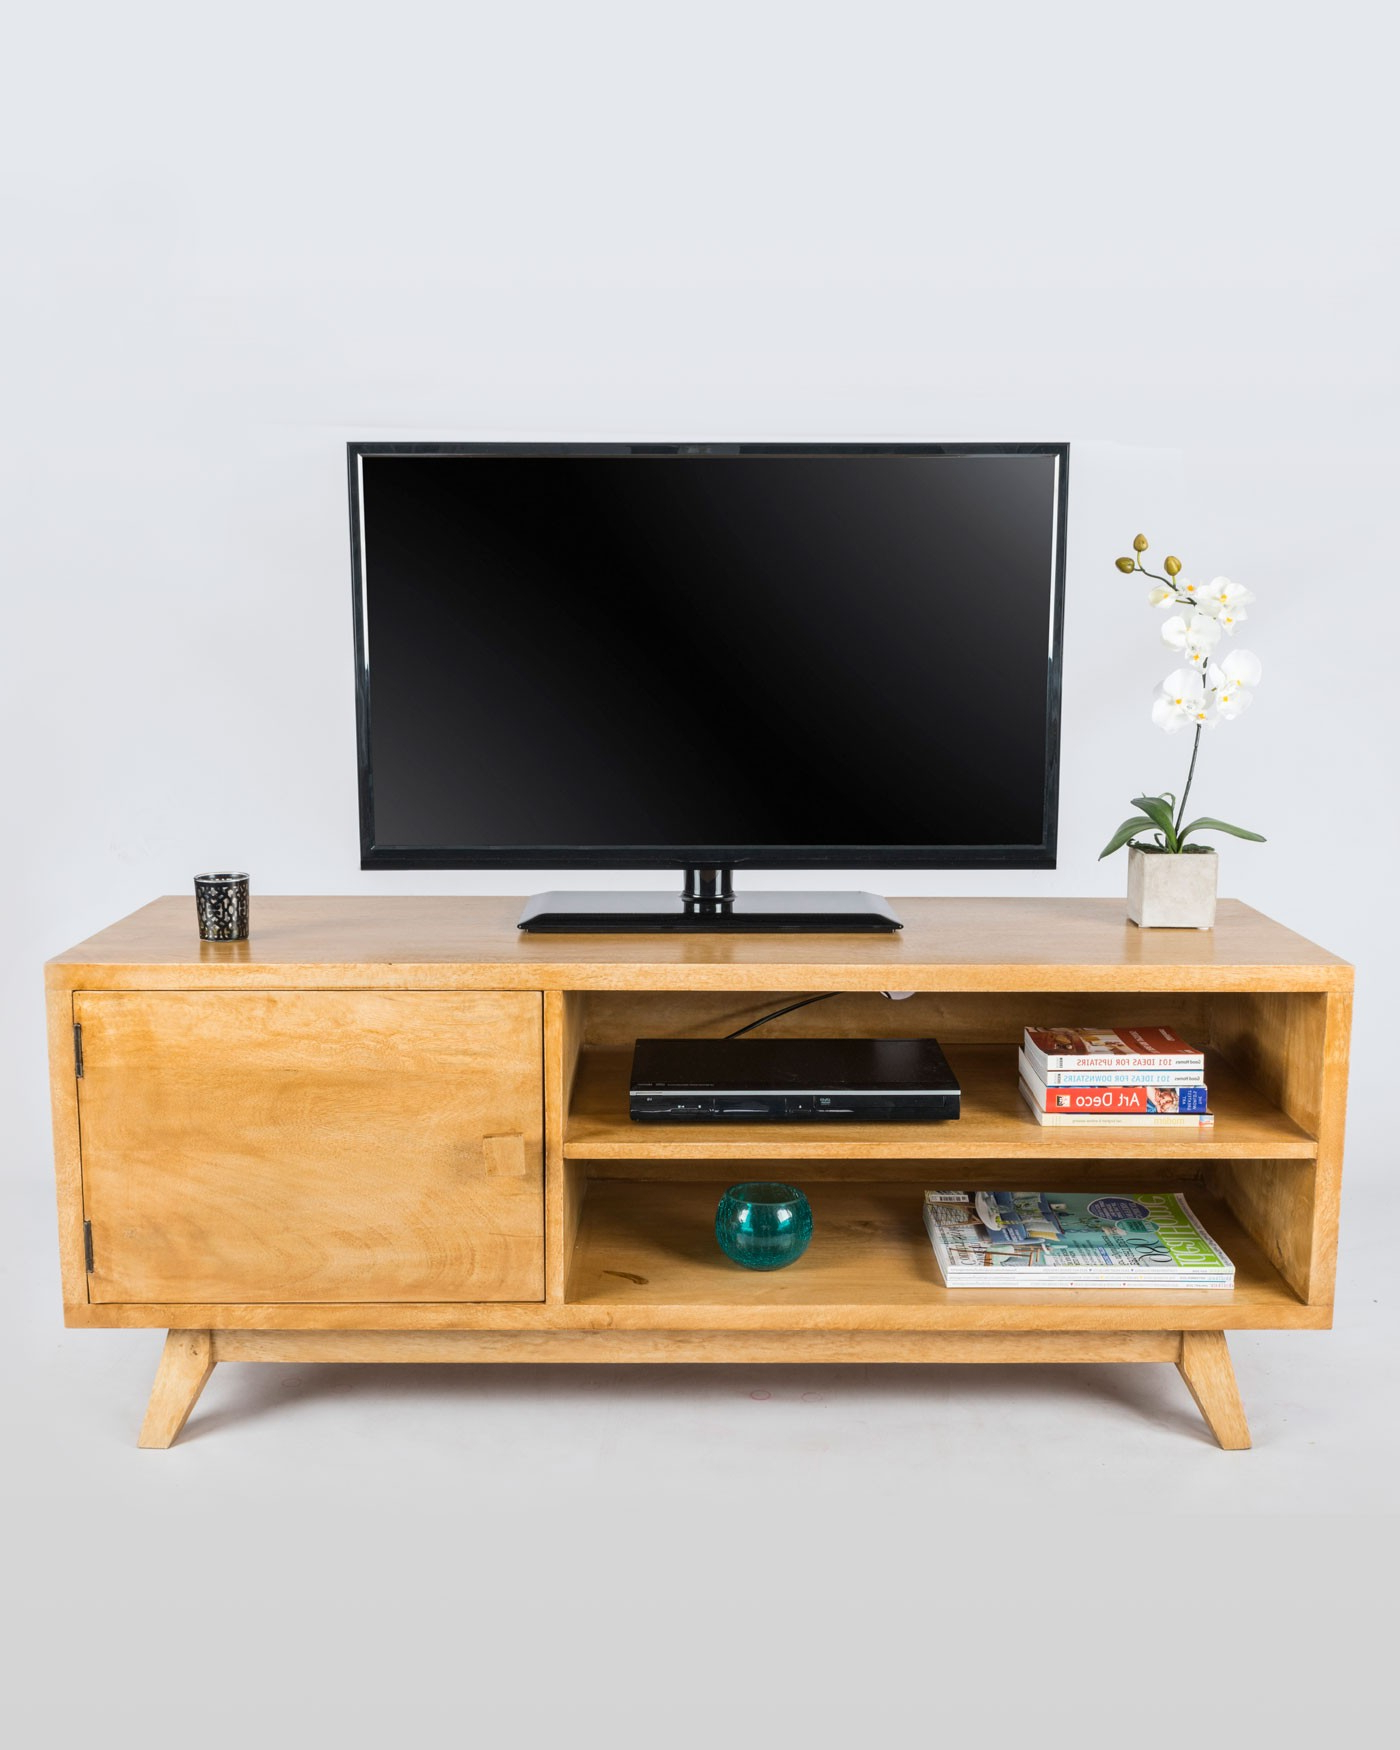 [%Retro Wooden Tv Stand With Shelf 100% Solid Mango Wood Oak Shade For Most Up To Date Mango Tv Stands|Mango Tv Stands Inside Most Current Retro Wooden Tv Stand With Shelf 100% Solid Mango Wood Oak Shade|Preferred Mango Tv Stands For Retro Wooden Tv Stand With Shelf 100% Solid Mango Wood Oak Shade|Well Liked Retro Wooden Tv Stand With Shelf 100% Solid Mango Wood Oak Shade Inside Mango Tv Stands%] (View 16 of 20)